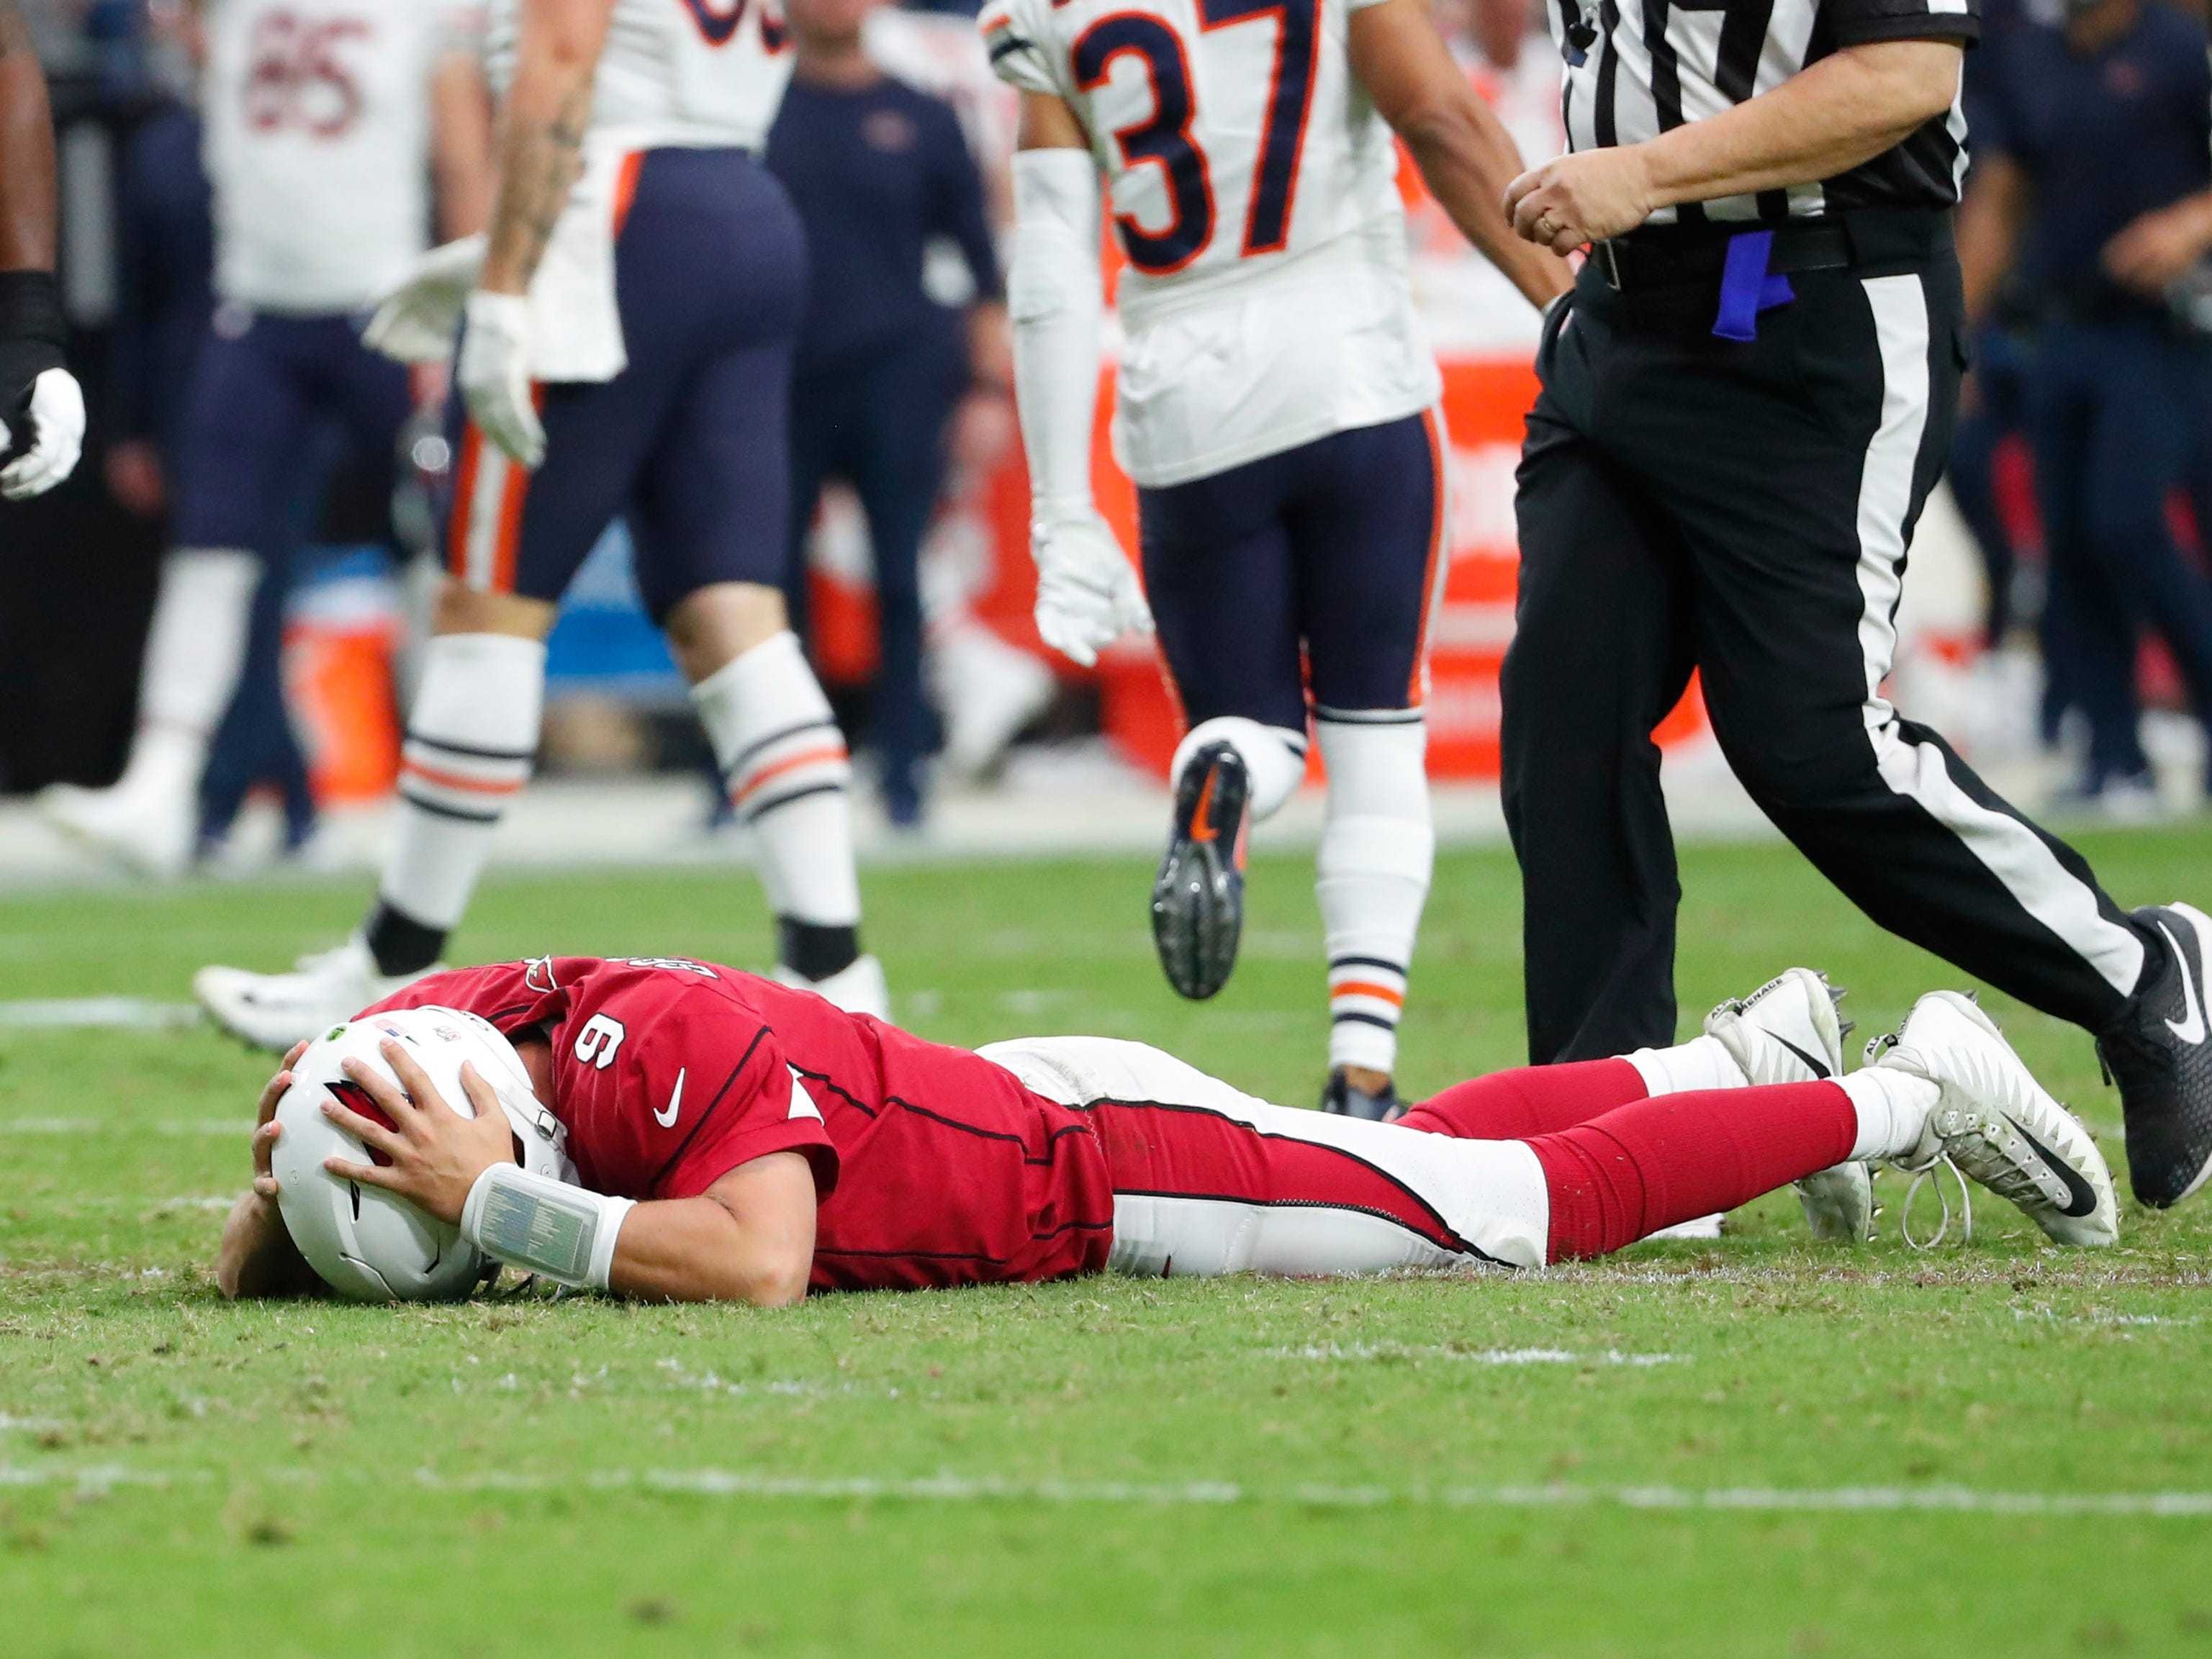 Arizona Cardinals quarterback Sam Bradford (9) lays on the ground after fumbling the ball to the Chicago Bears during the fourth quarter at State Farm Stadium in Glendale, Ariz. September 23, 2018.